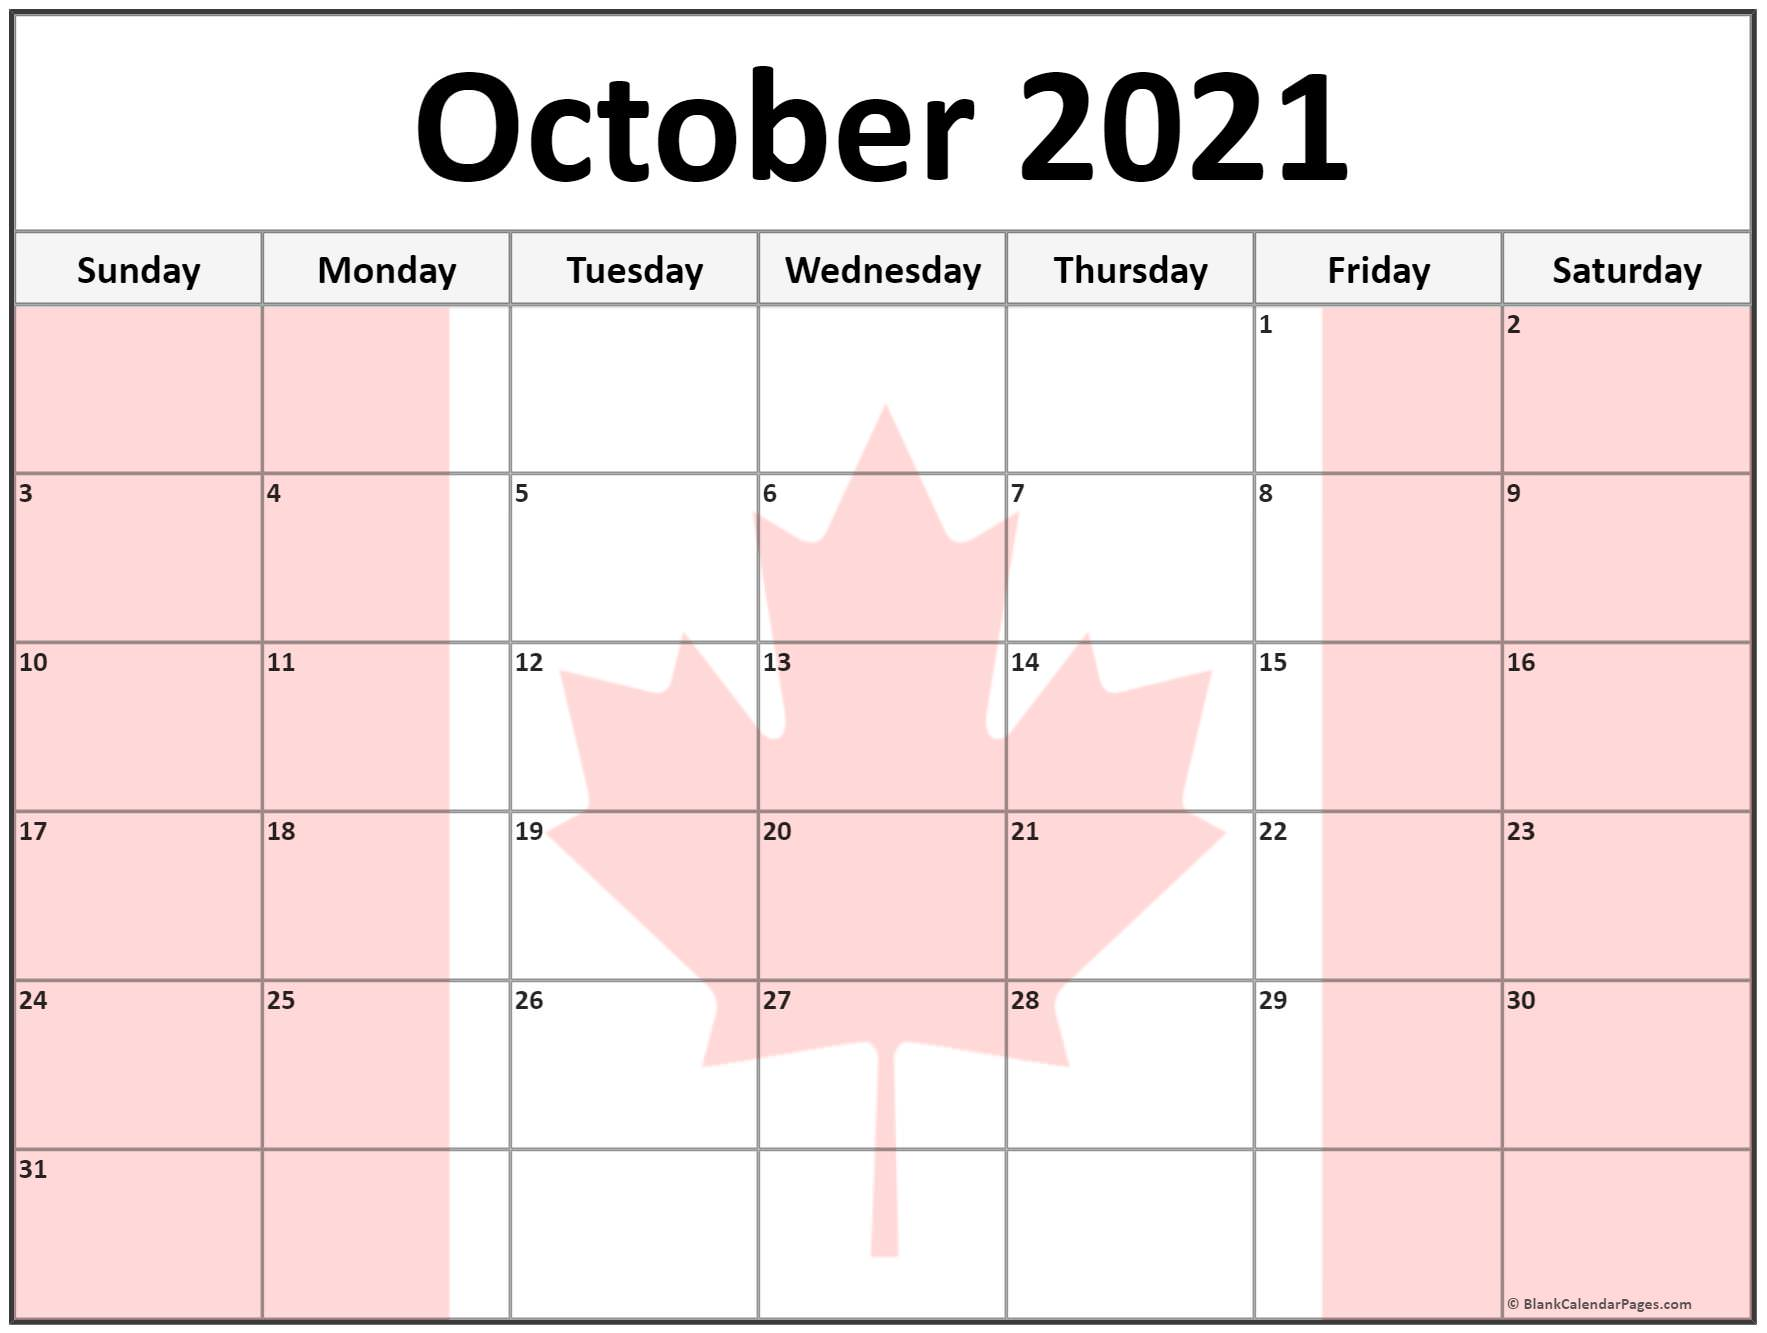 October 2021 Canada flag monthly calendar printout